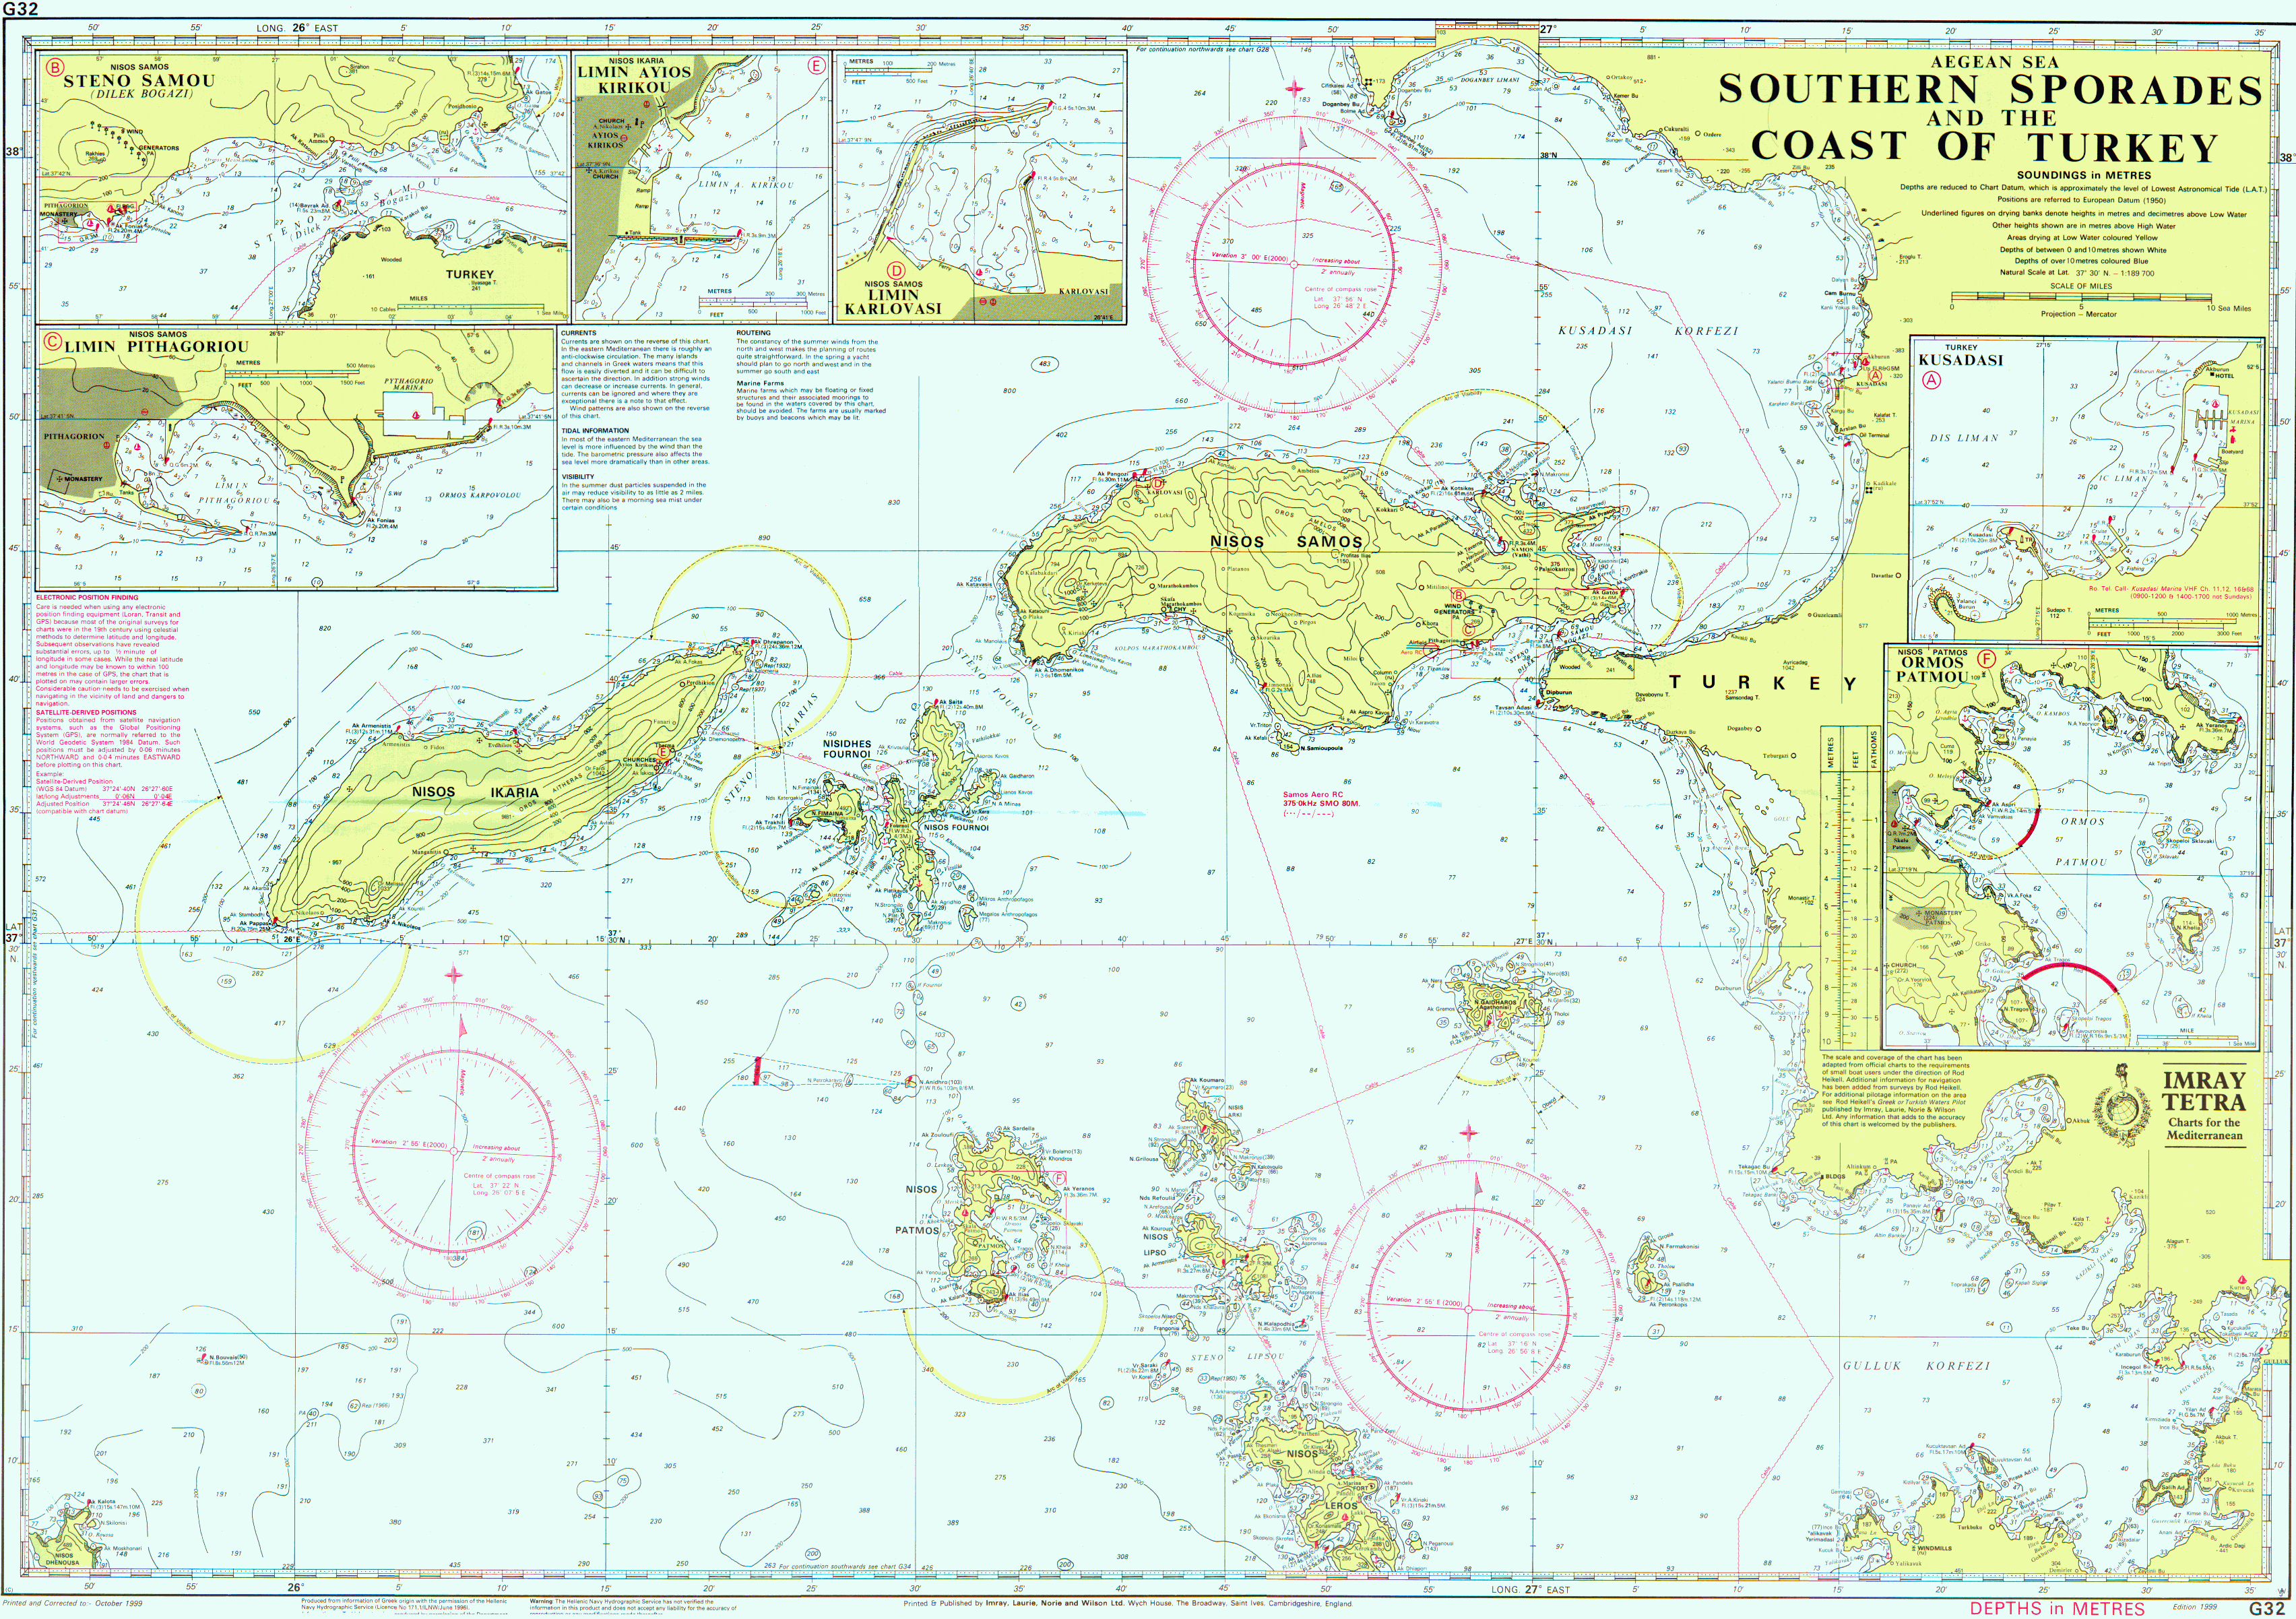 nautical chart of southern sporades and Turkey